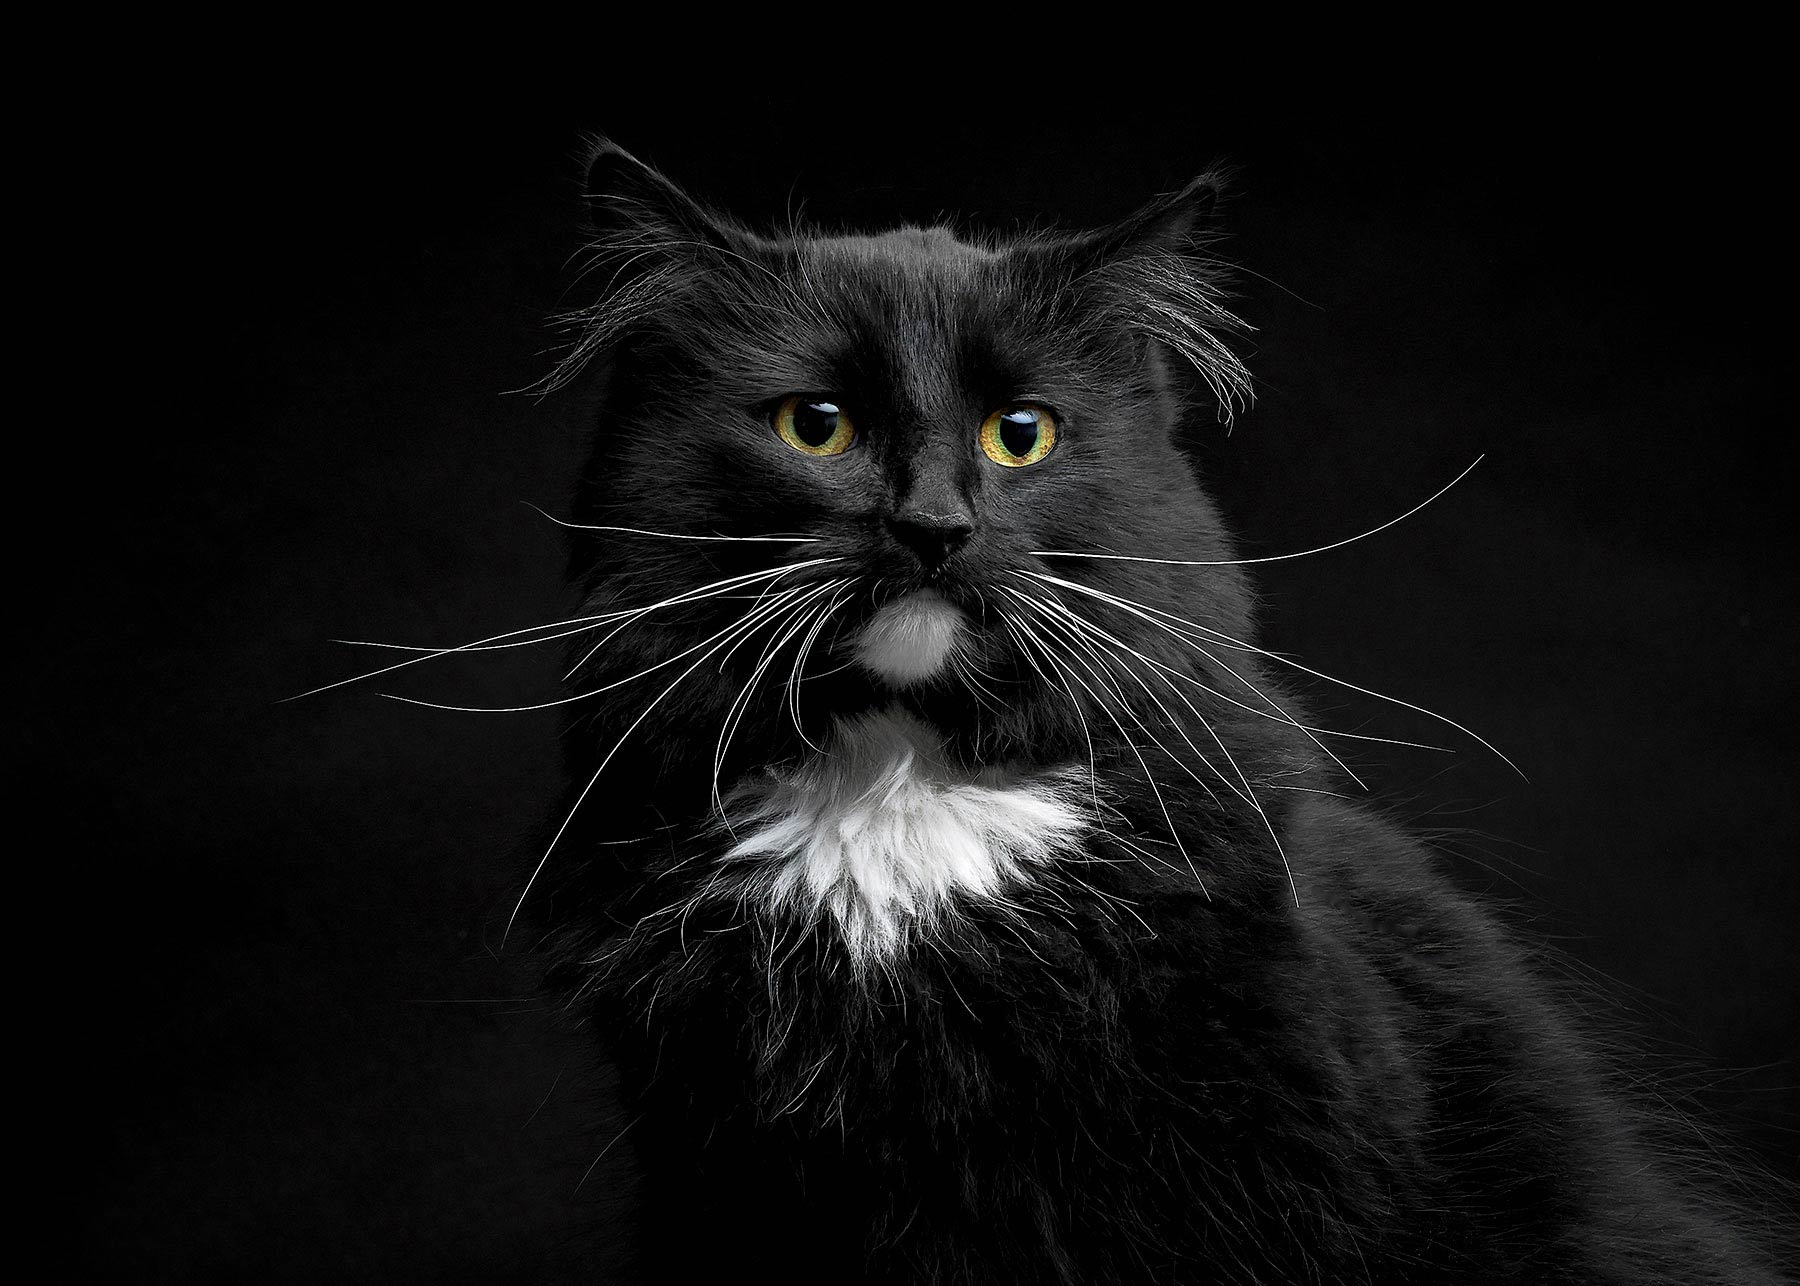 A-studio-portrait-of-a-black-and-white-cat-against-a-black-background